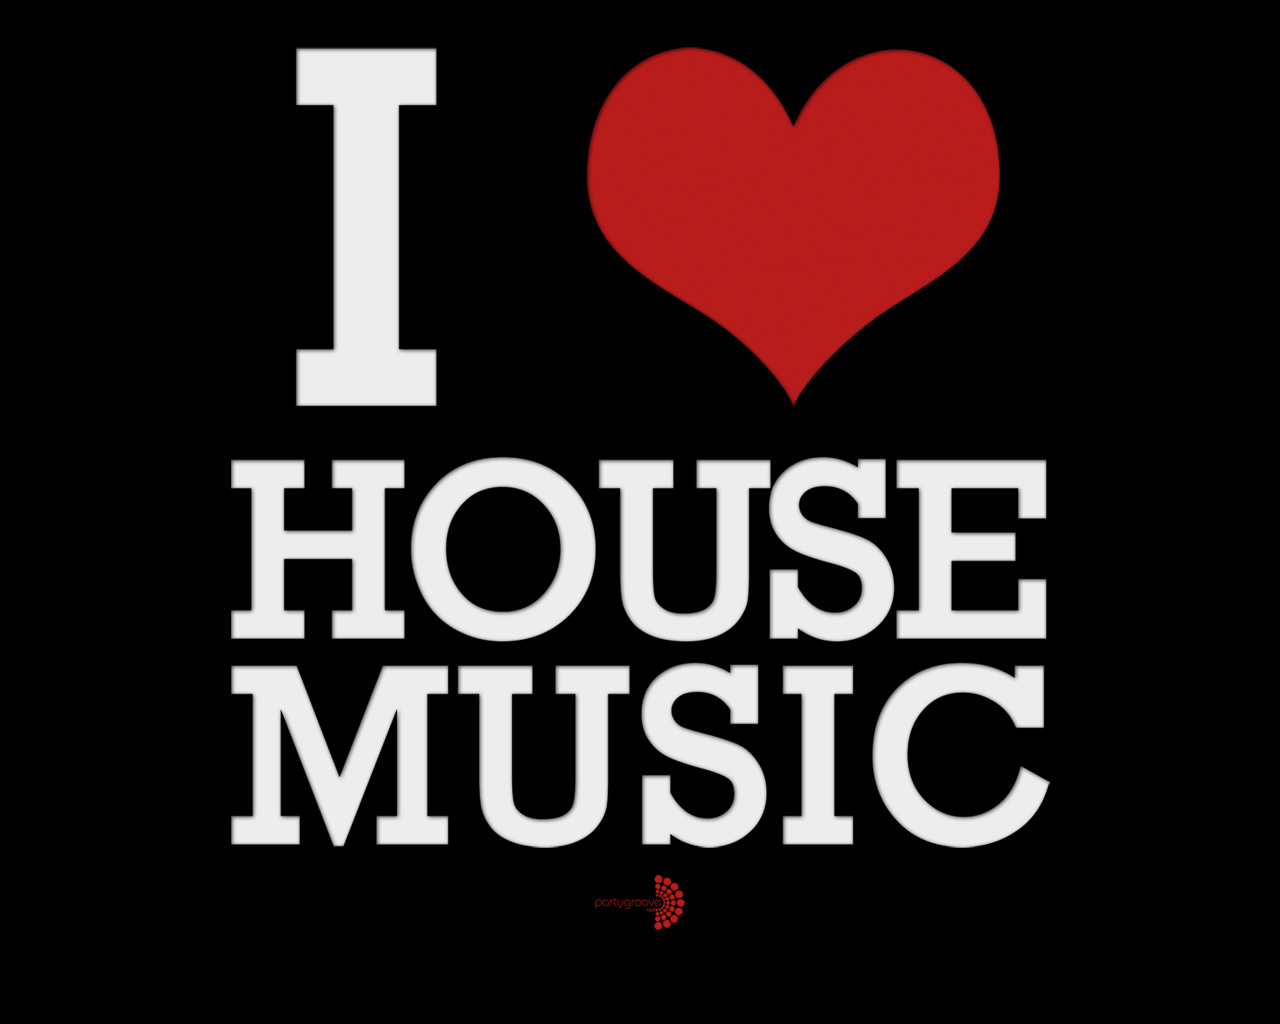 images of love house music wallpaper